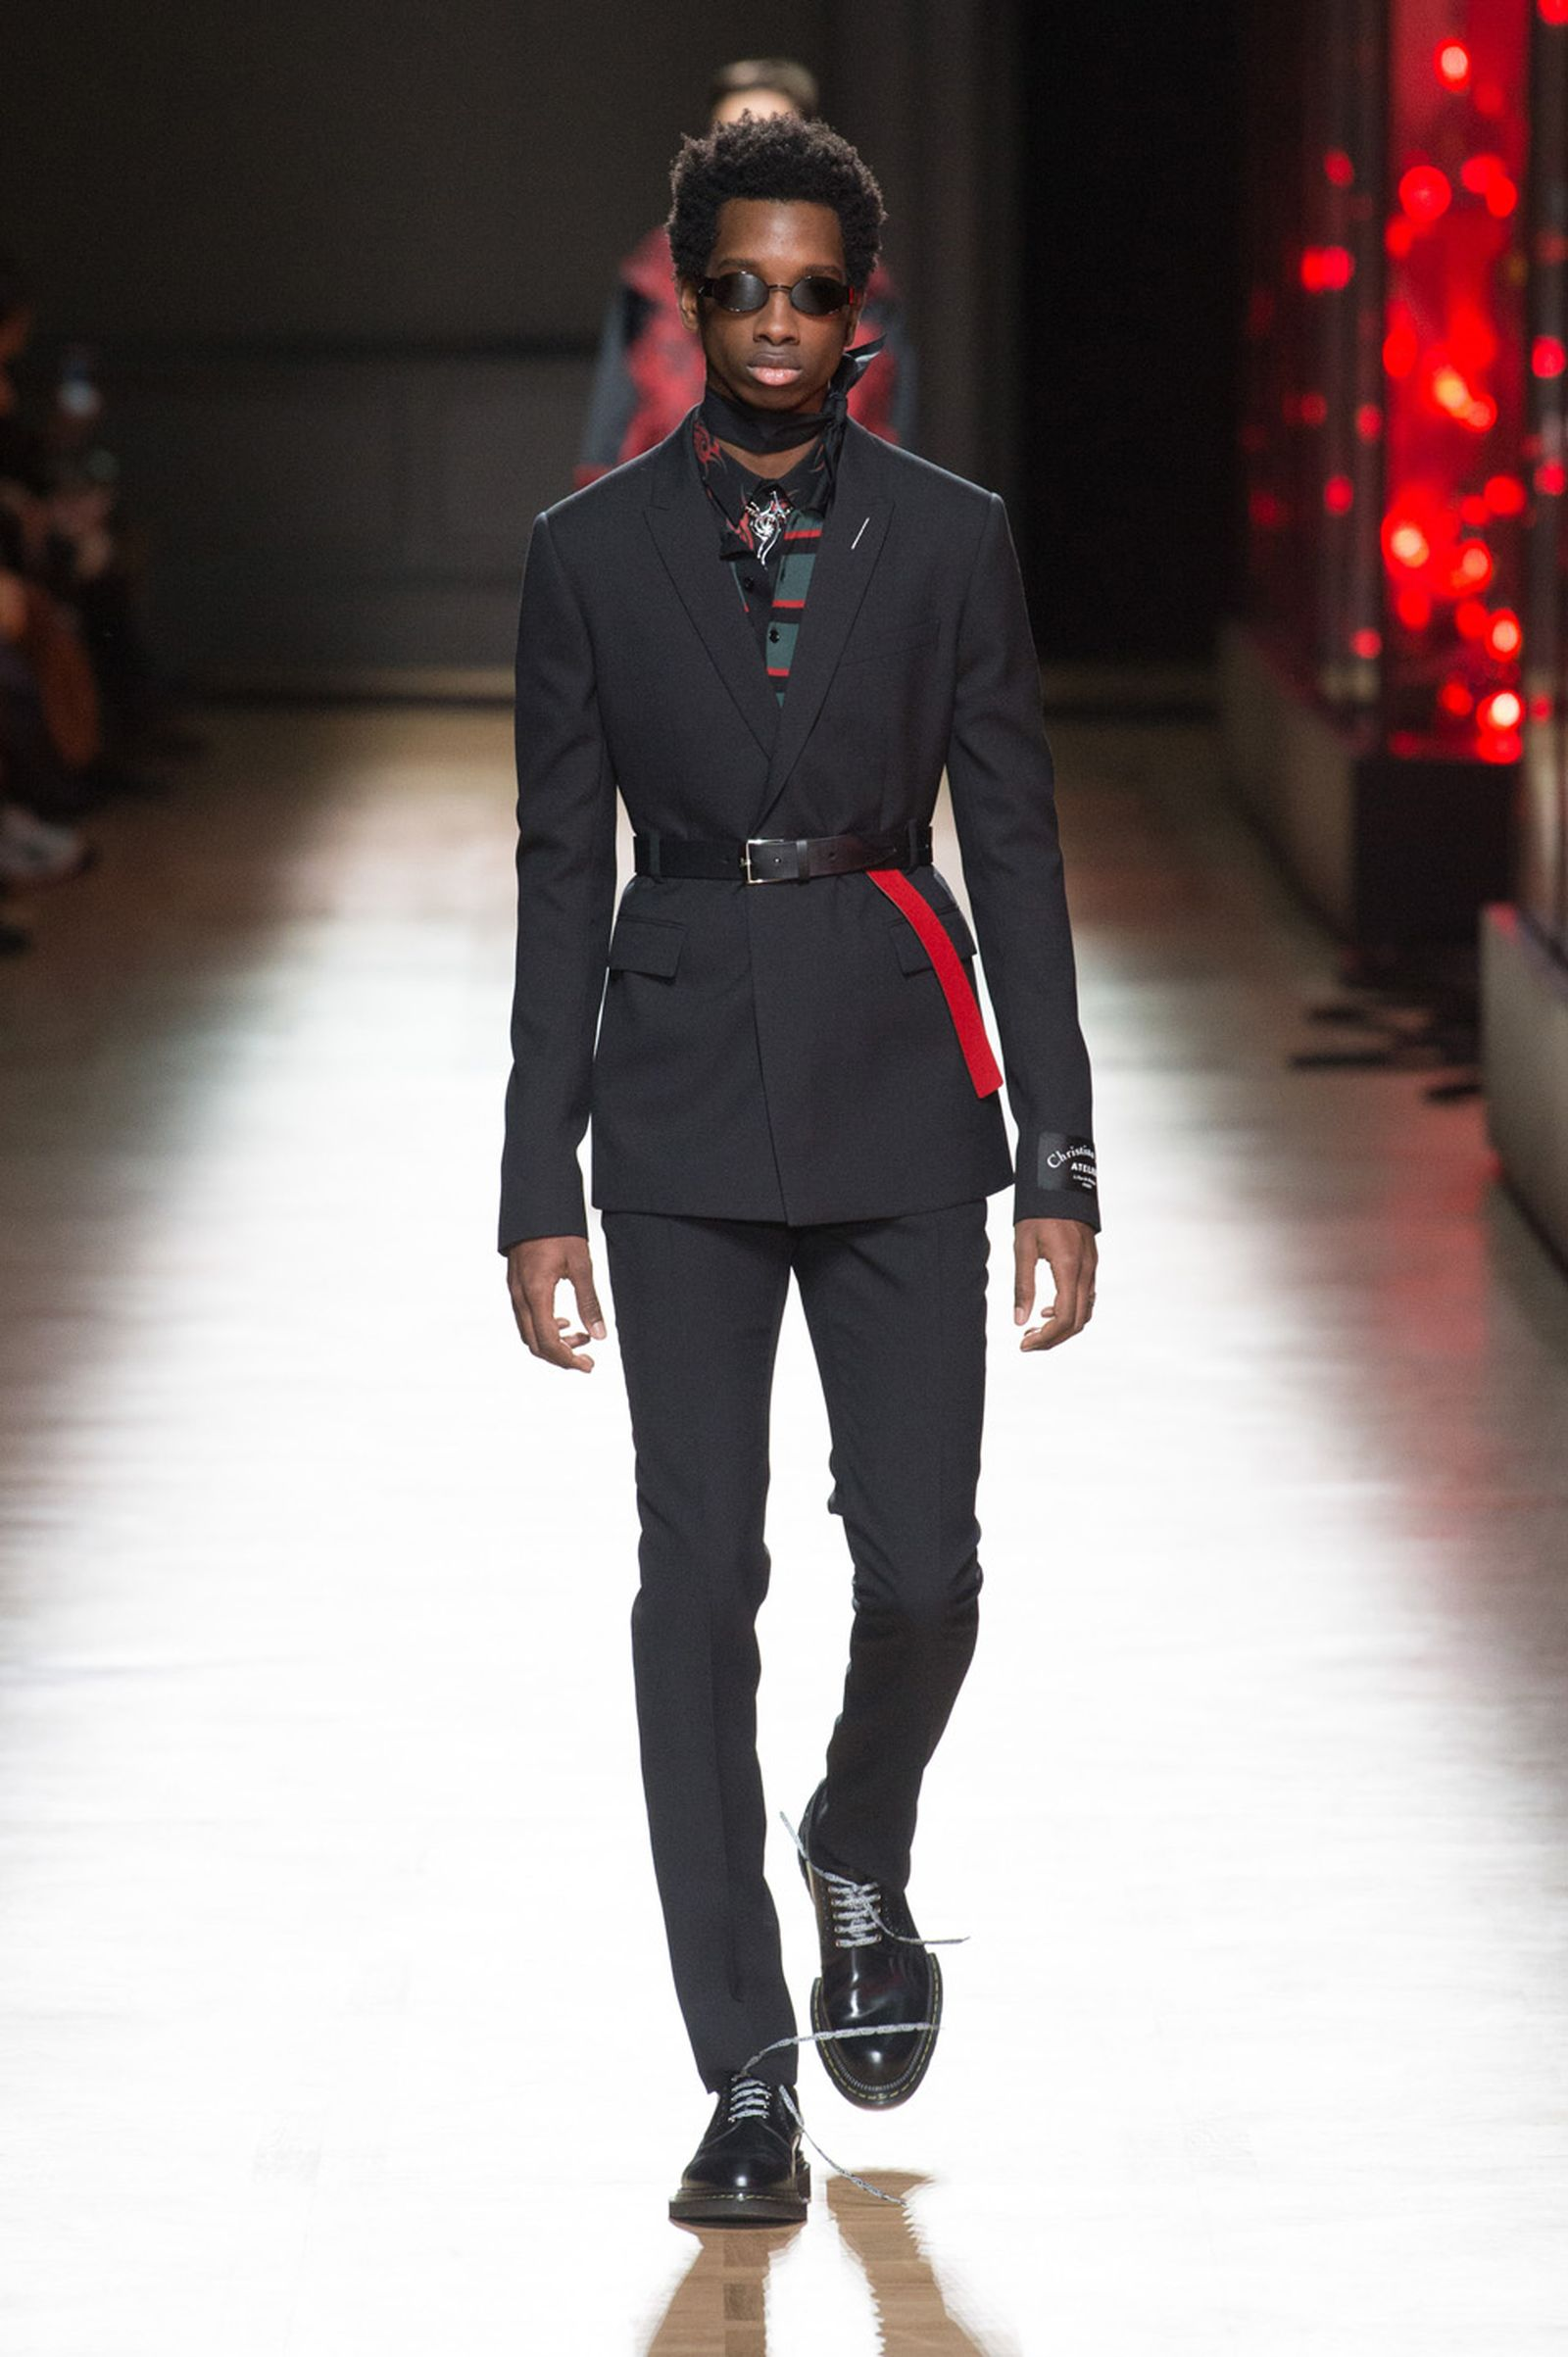 DIOR HOMME WINTER 18 19 BY PATRICE STABLE look23 Fall/WInter 2018 runway